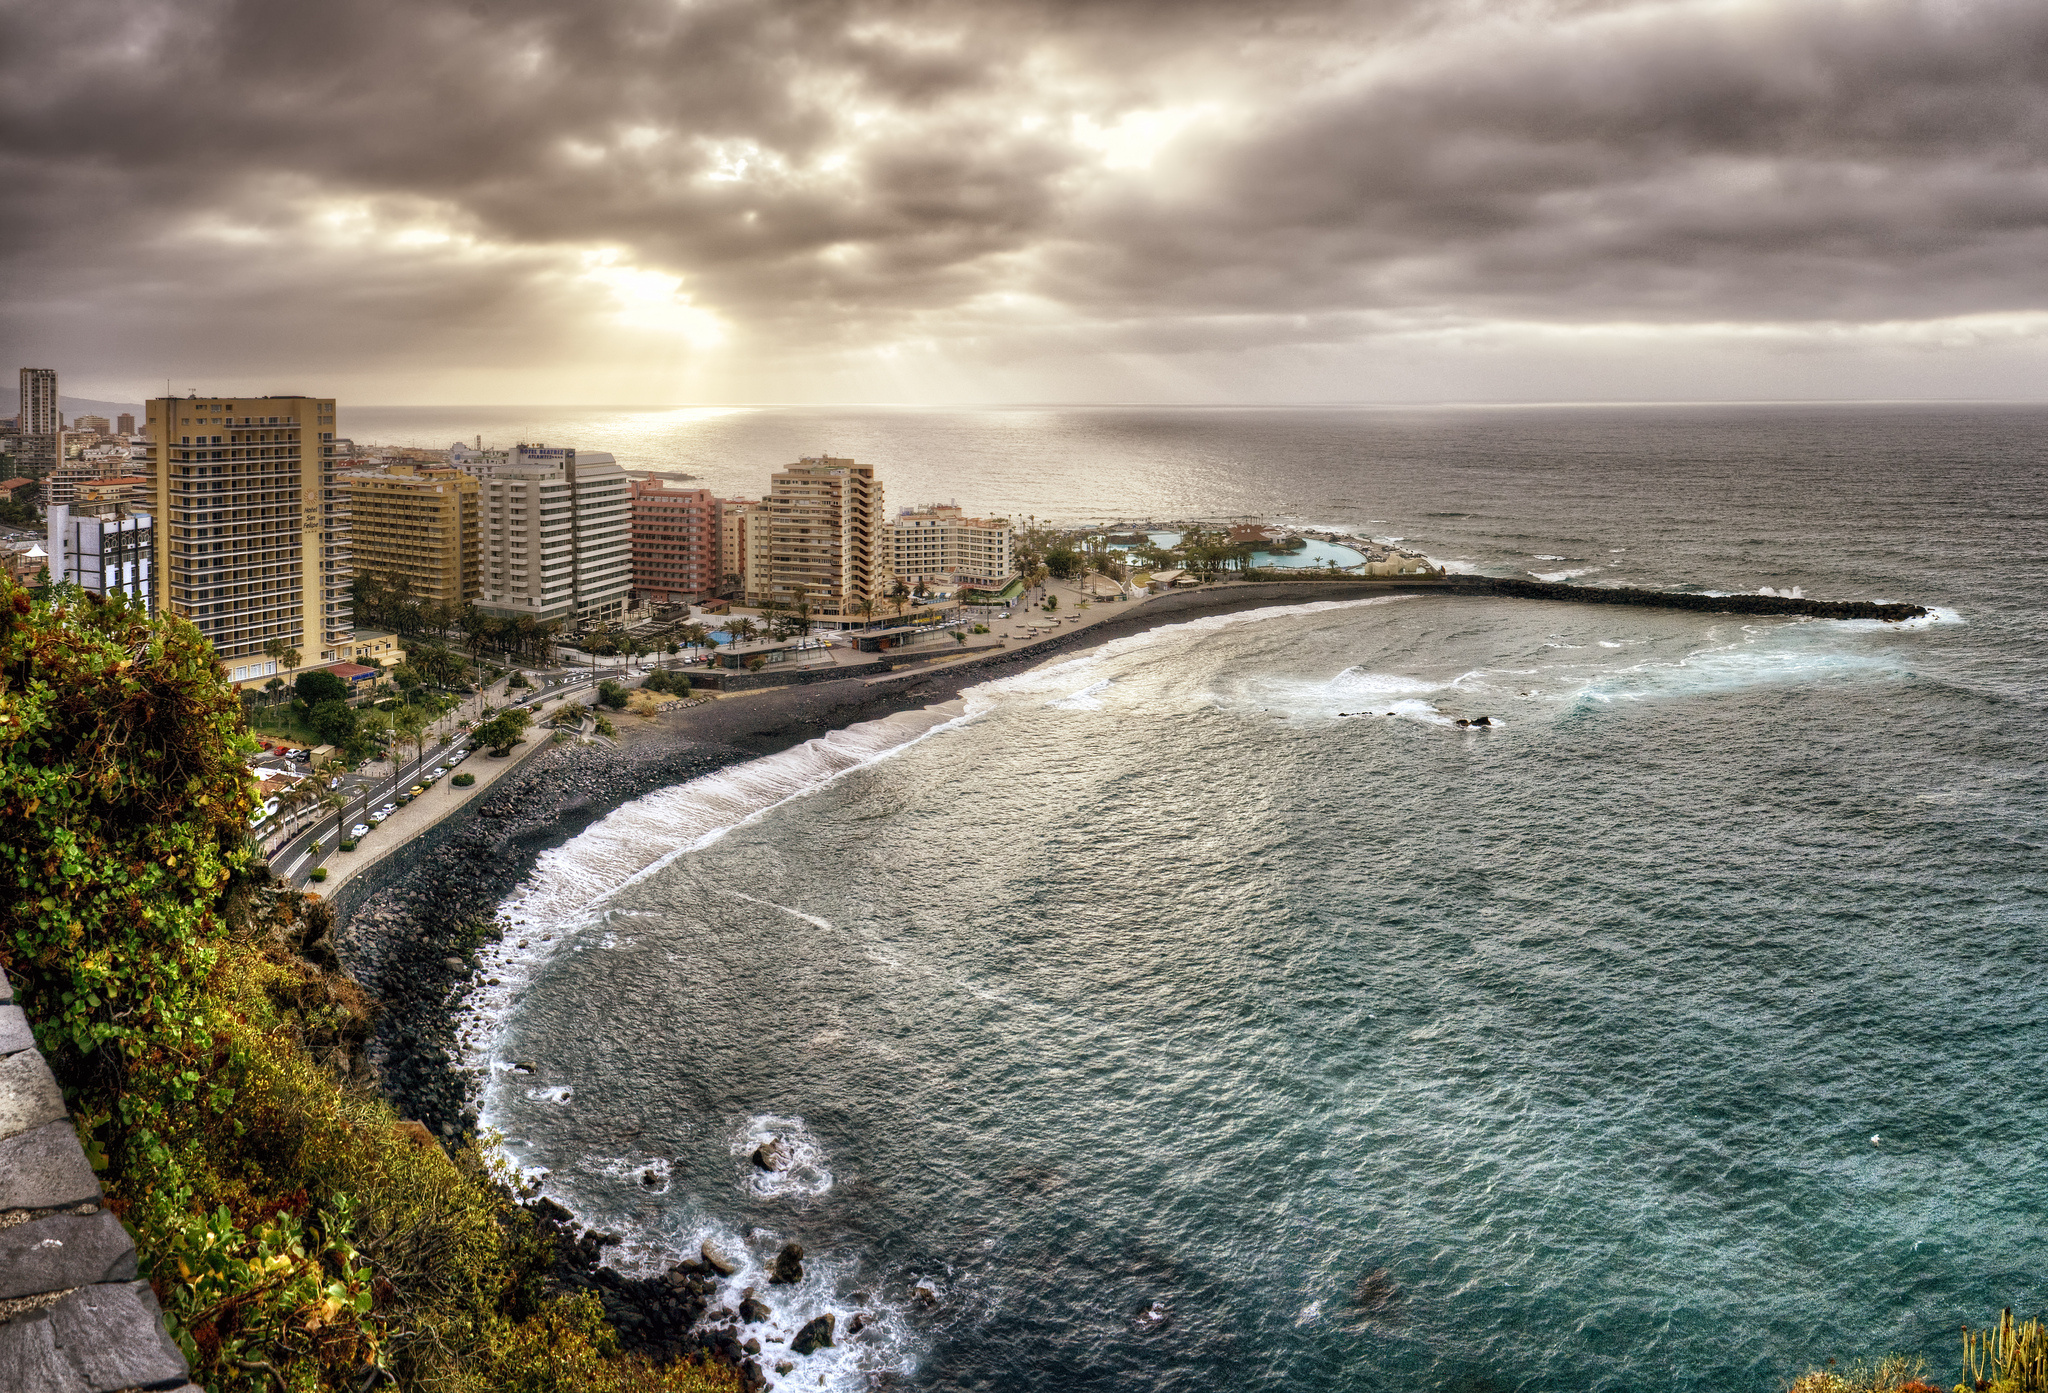 Canary Islands Atlantic Ocean coast buildings ocean landscape